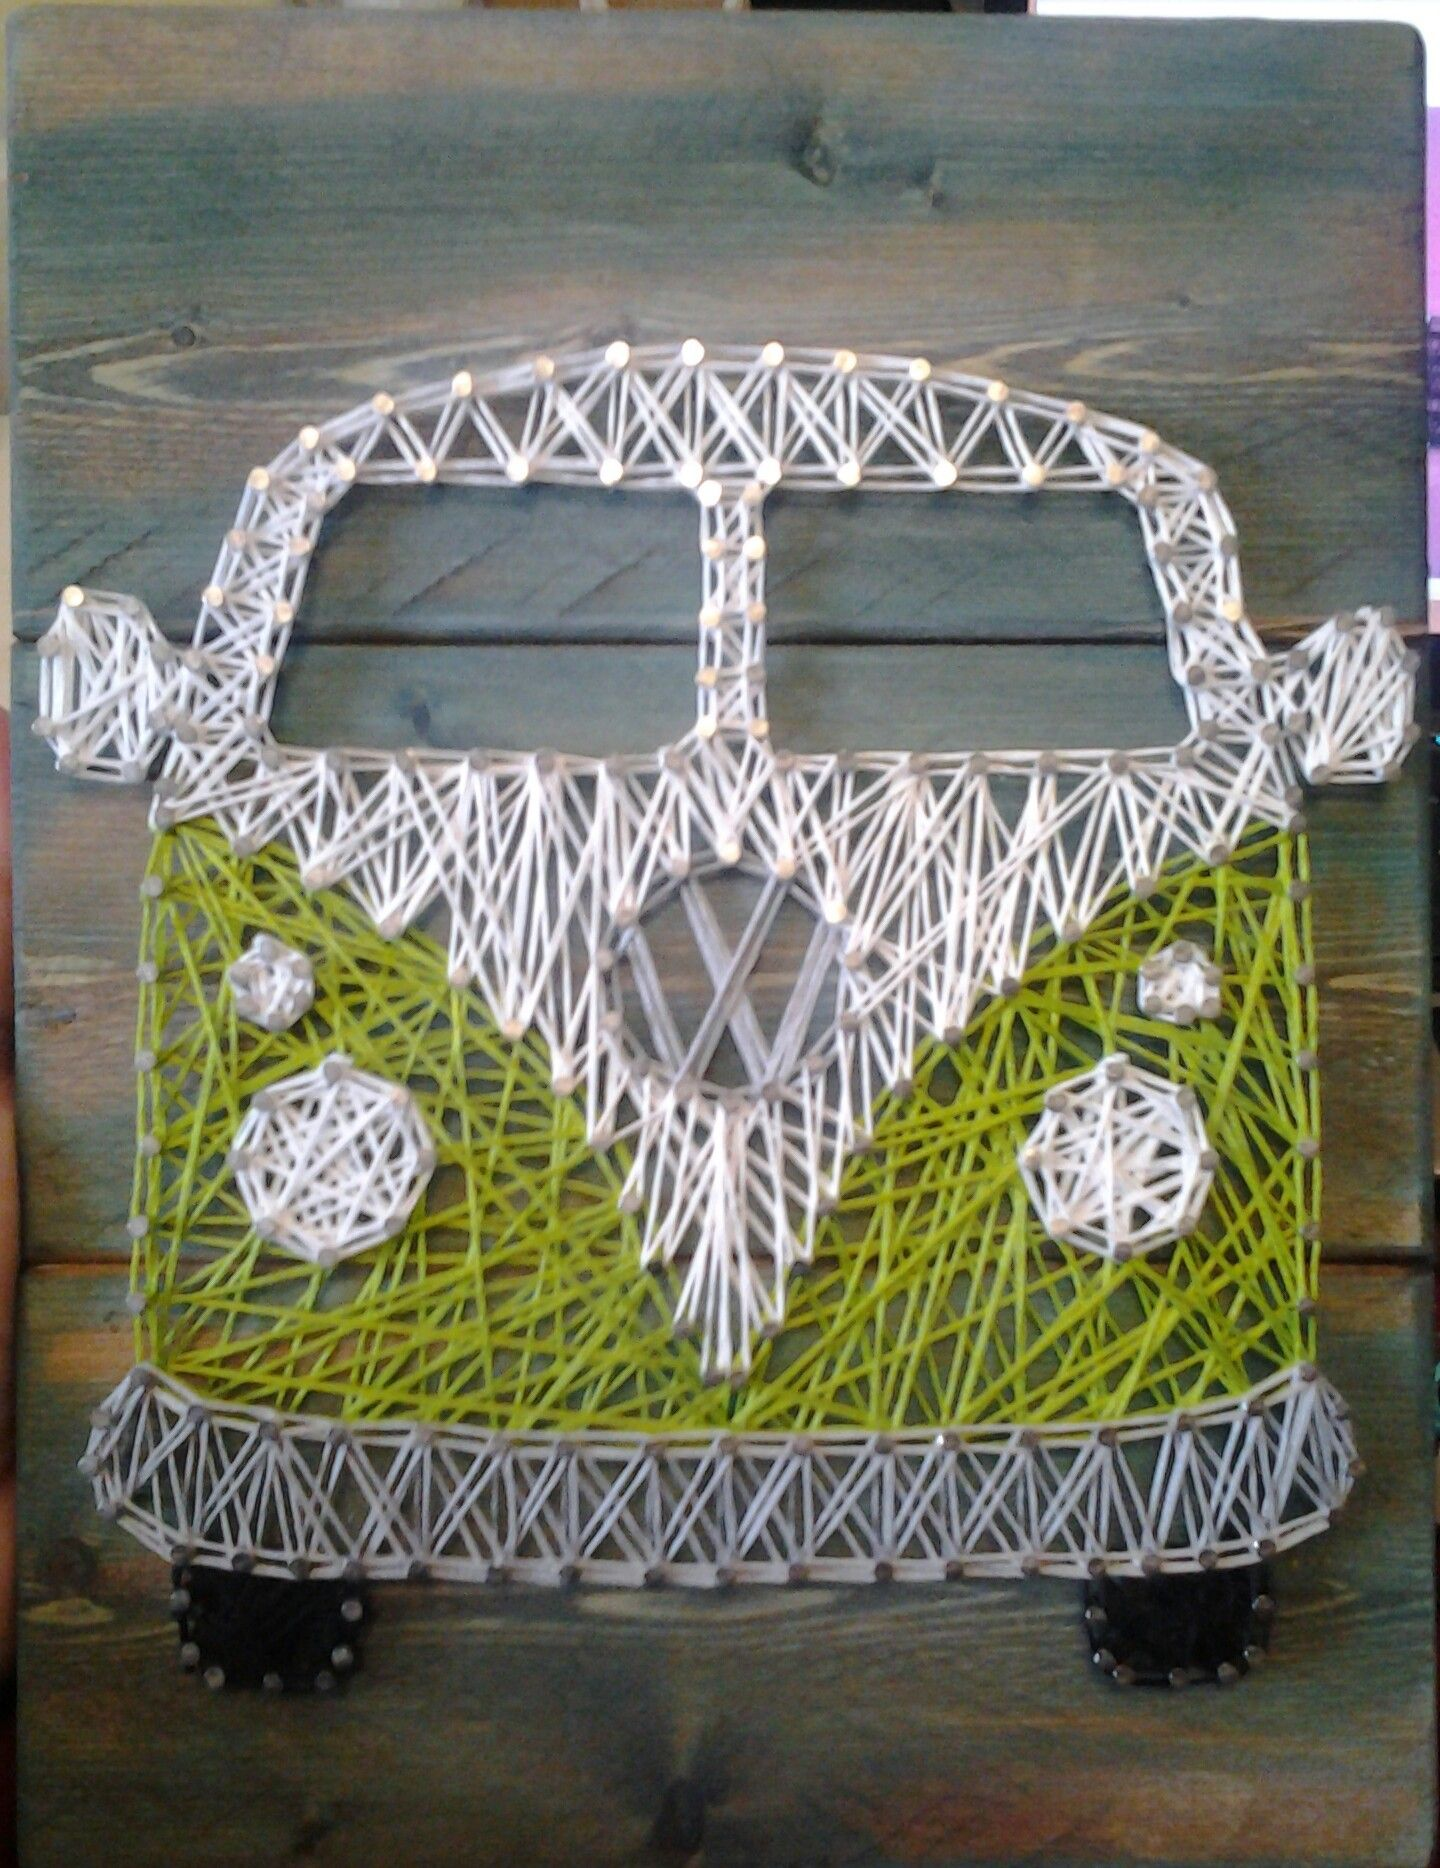 vw bus hippie van string art diy 39 ed string art. Black Bedroom Furniture Sets. Home Design Ideas